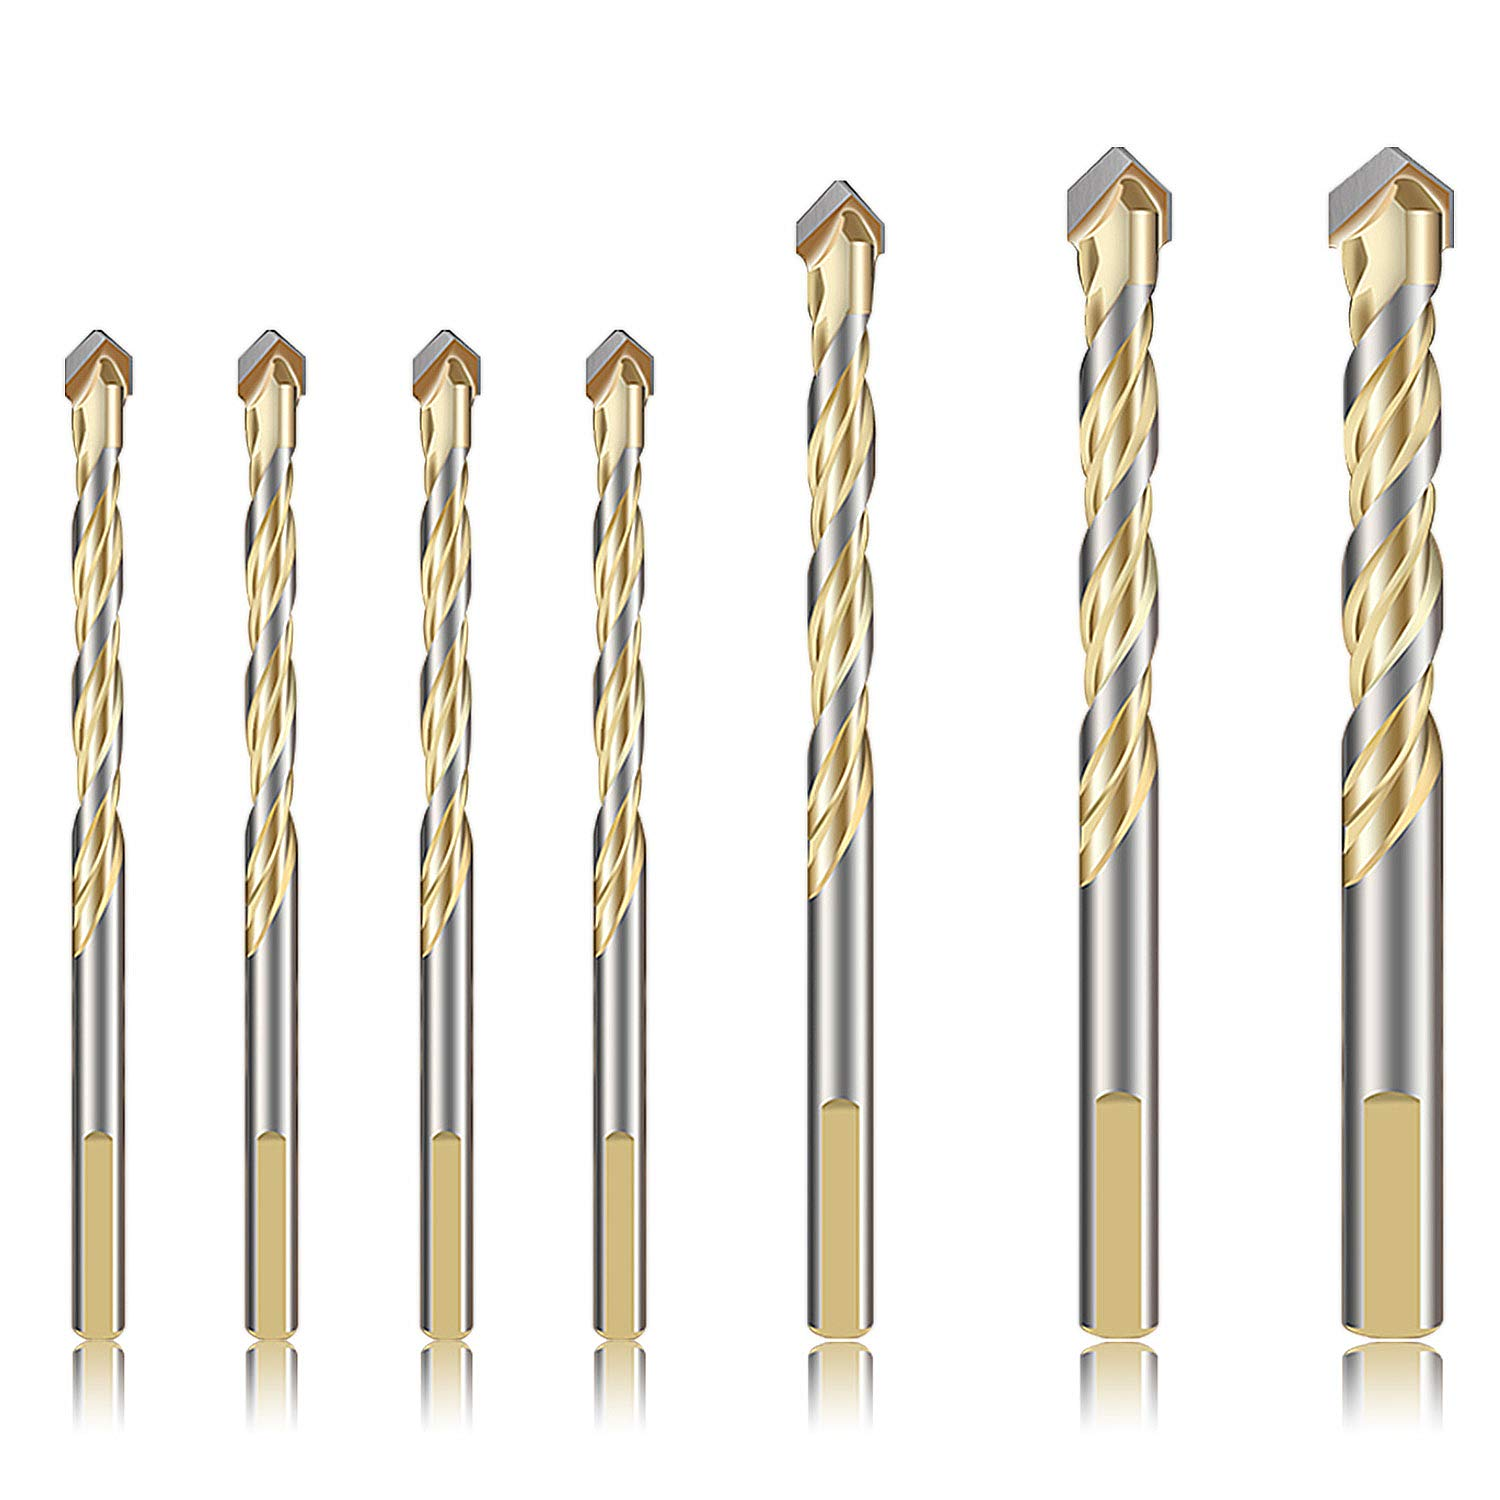 7-Piece Masonry Drill Bits Set for Metal Concrete Tile Glass Plastic Wood, YUERSEAK Tungsten Carbide Tip for Wall Mirror Ceramic Tile on Concrete and Brick Wall, YG8 Hard Alloy (Gold) 713mIz3Sj9L